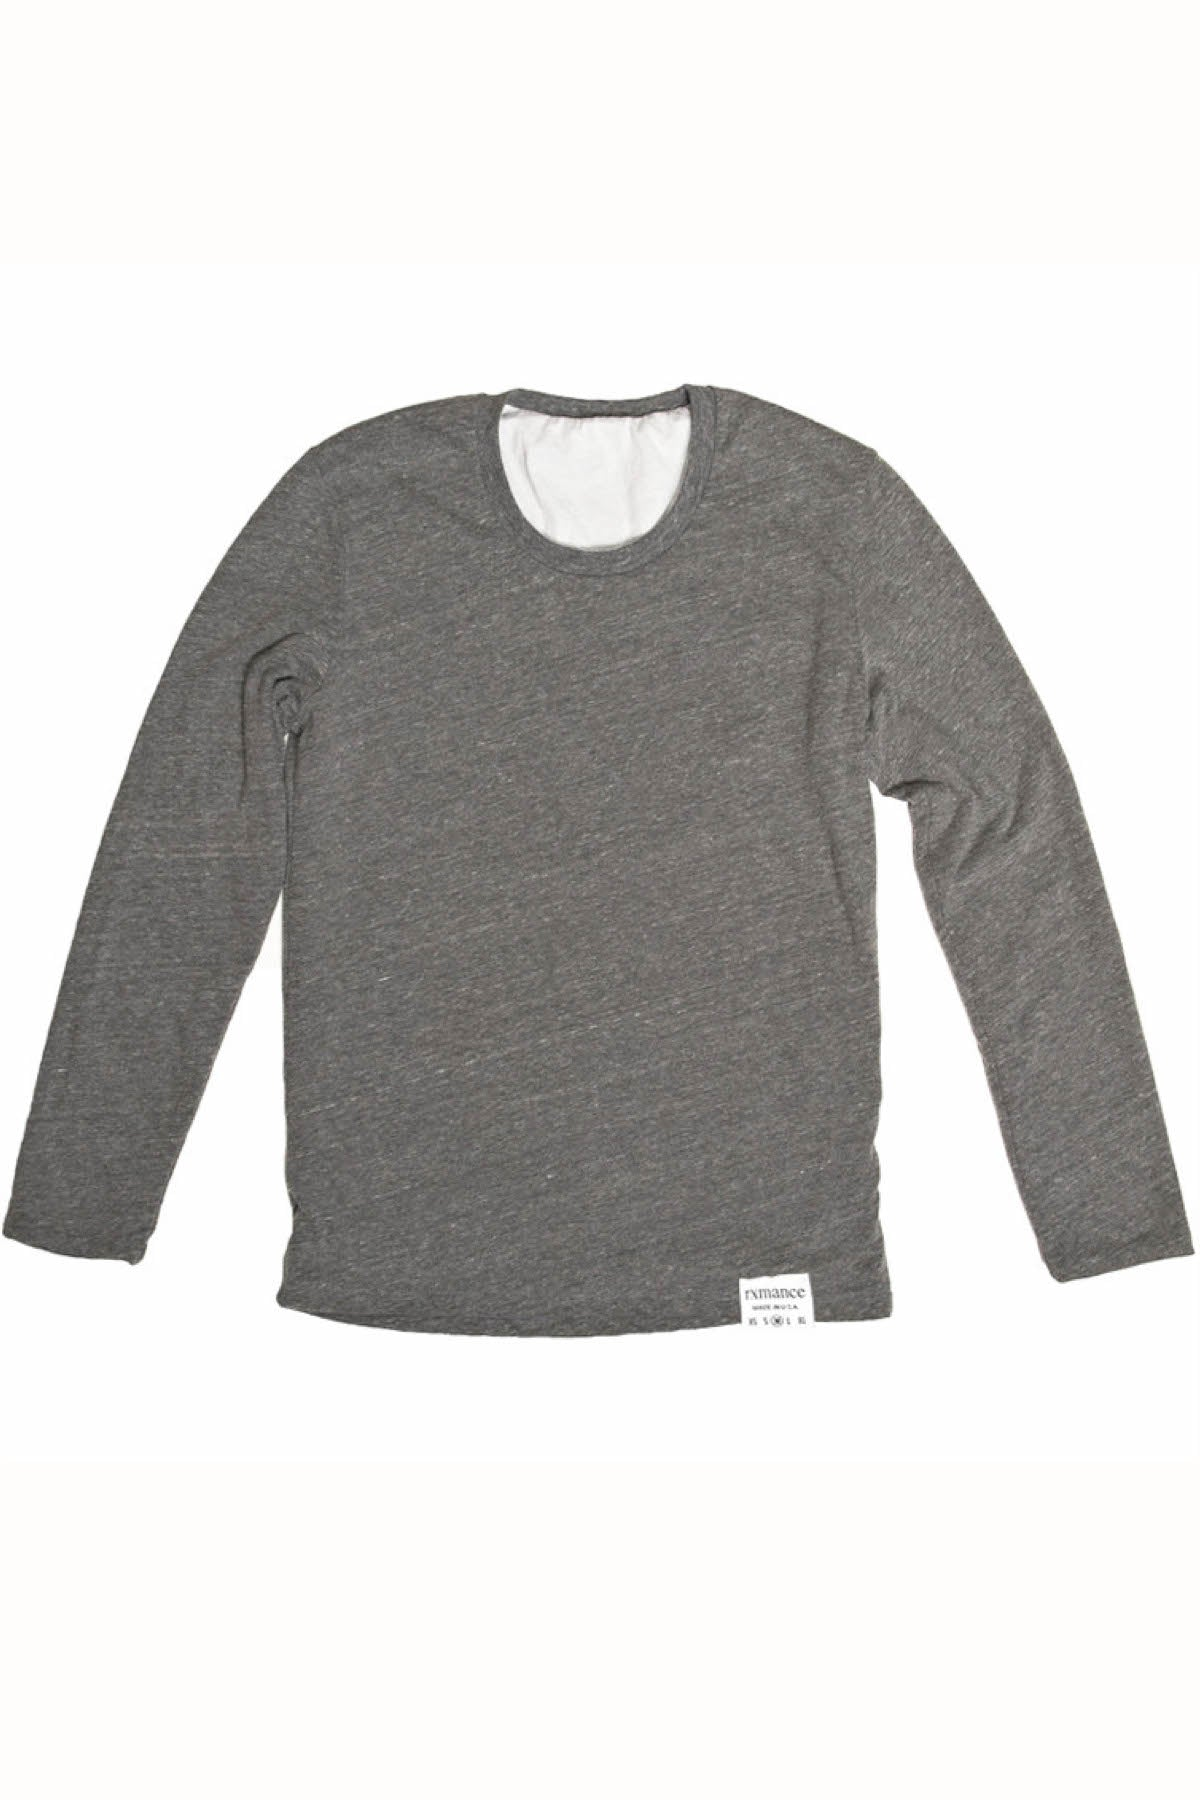 Rxmance Unisex Heather Grey Reversible Long Sleeve Tee